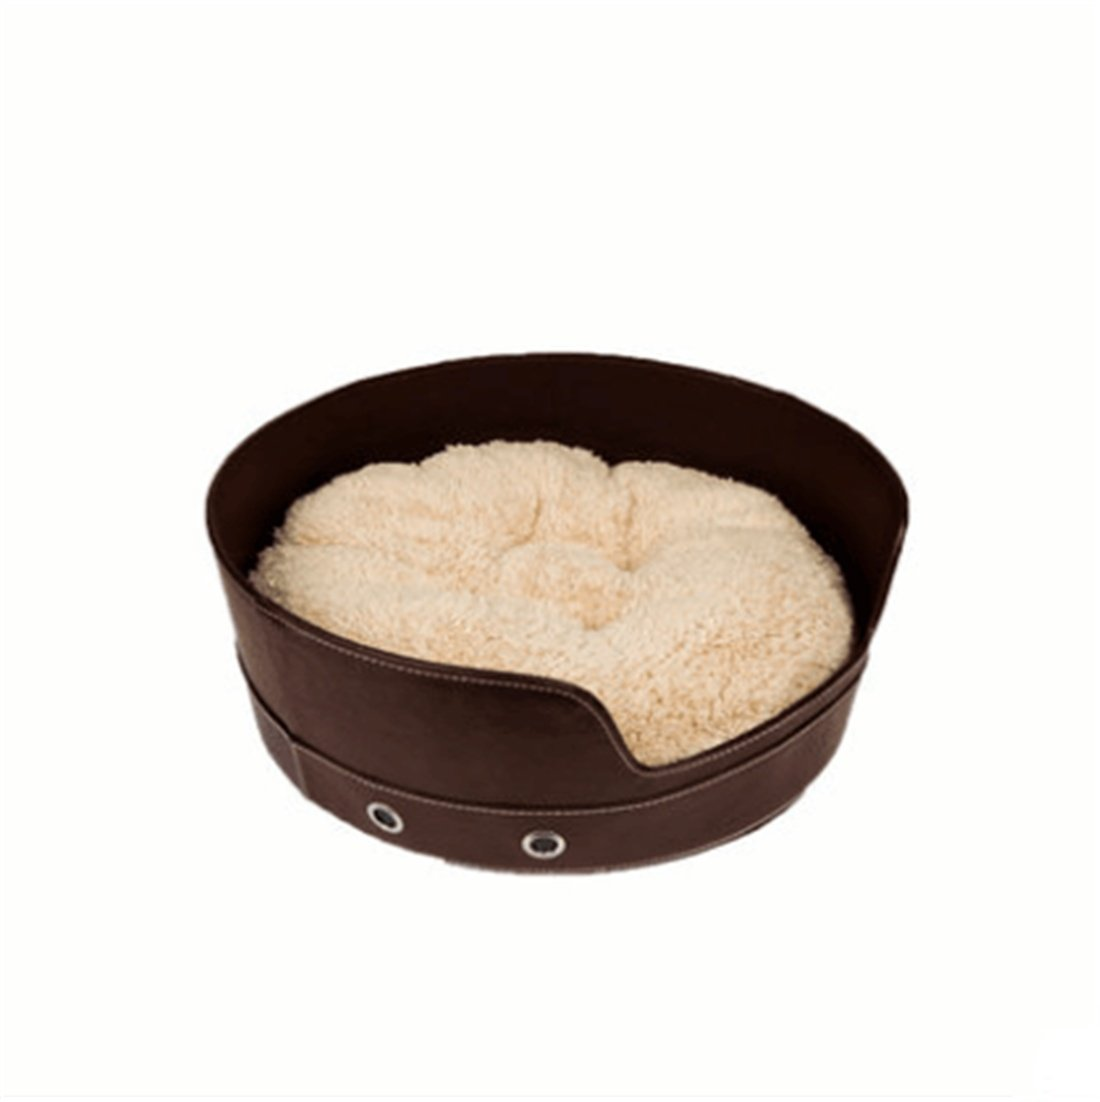 Coffee CHWWO Imitation Leather Fabric Round Doghouse Set (Three mats) Orthopedic Dog Bed Pet Supplies Easy to Clean Four Seasons Universal Ideal Comfortable Bed 48  48  18cm, Coffee